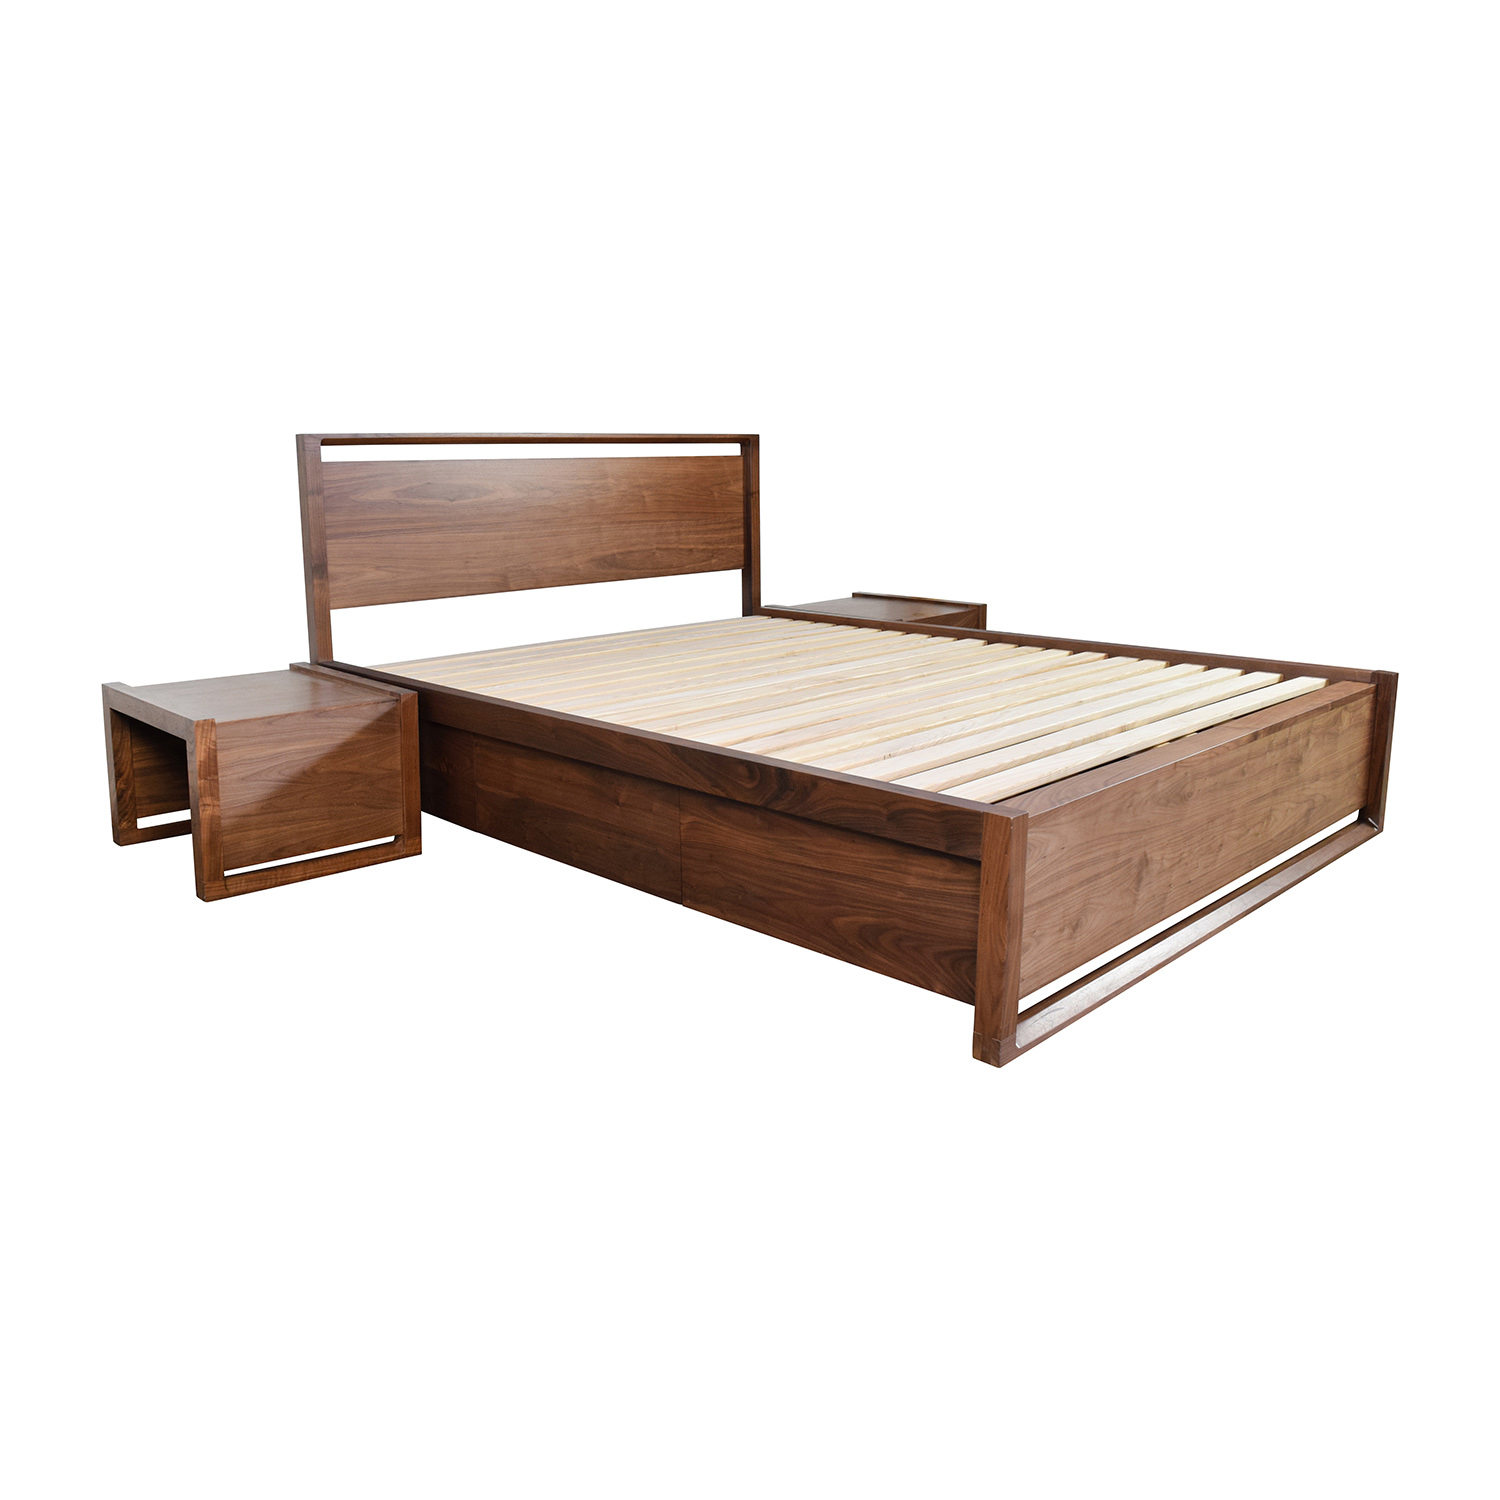 OFF Design Within Reach Design Within Reach Queen Bed Frame